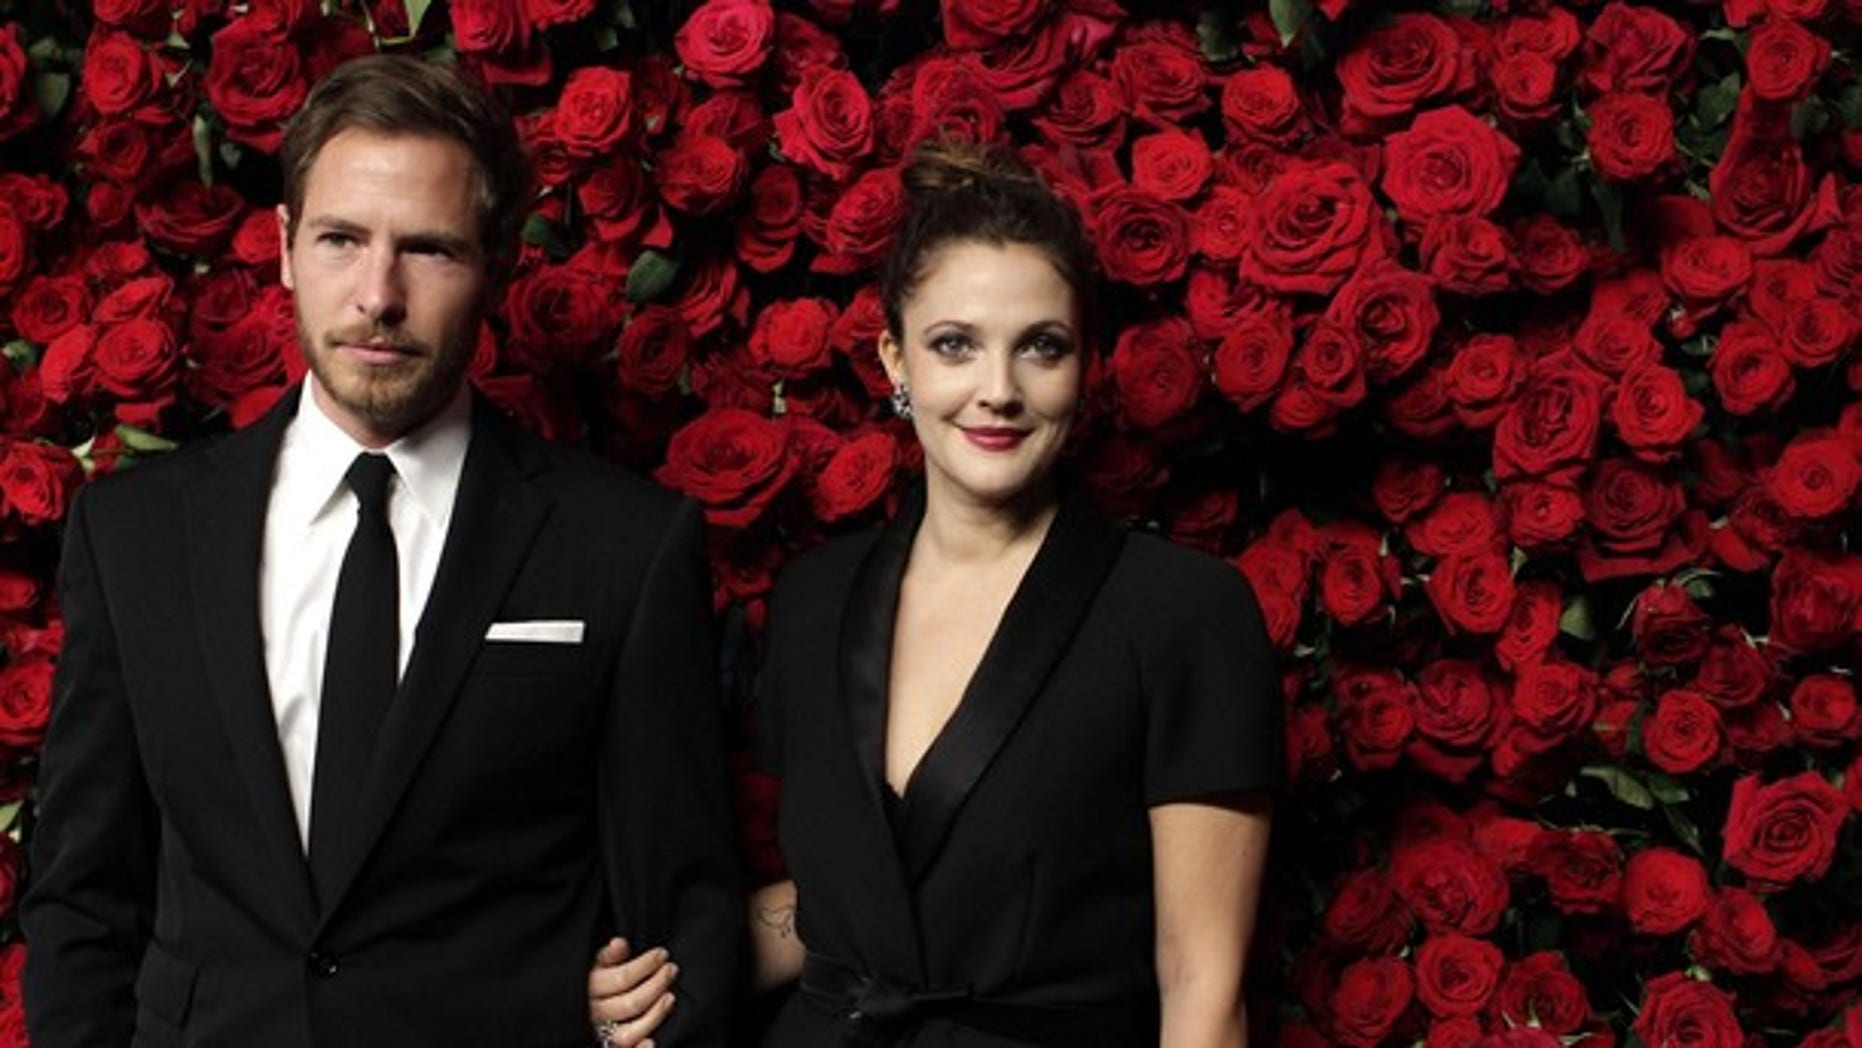 Nov. 15: Actress Drew Barrymore (R) and Will Kopelman (L) attend the Museum of Modern Art's fourth annual Film Benefit in New York. (REUTERS)